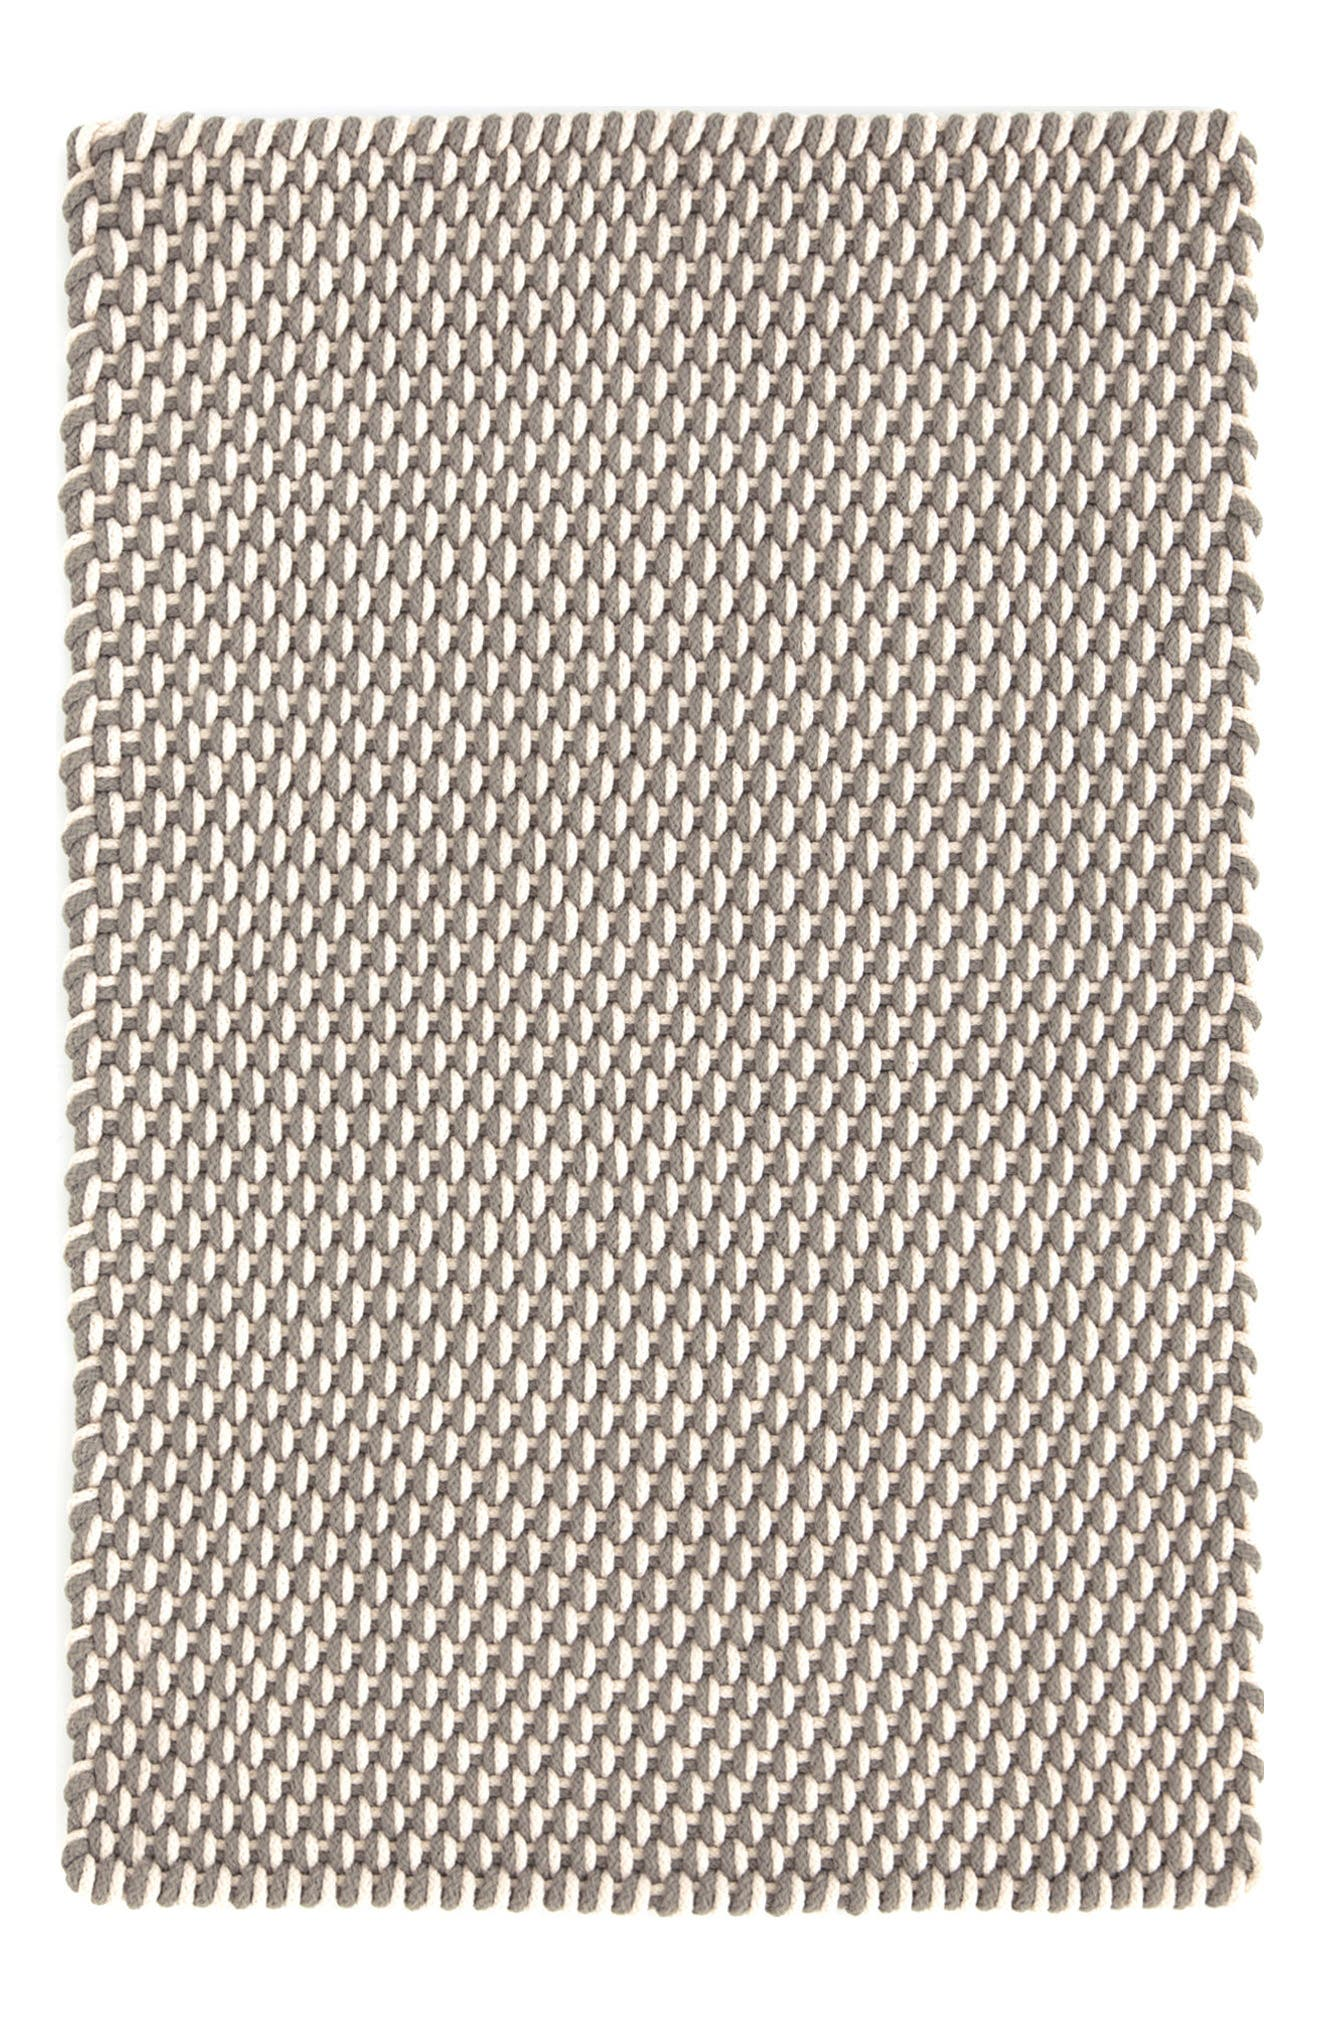 Woven Rope Rug,                             Main thumbnail 1, color,                             FIELDSTONE/ IVORY